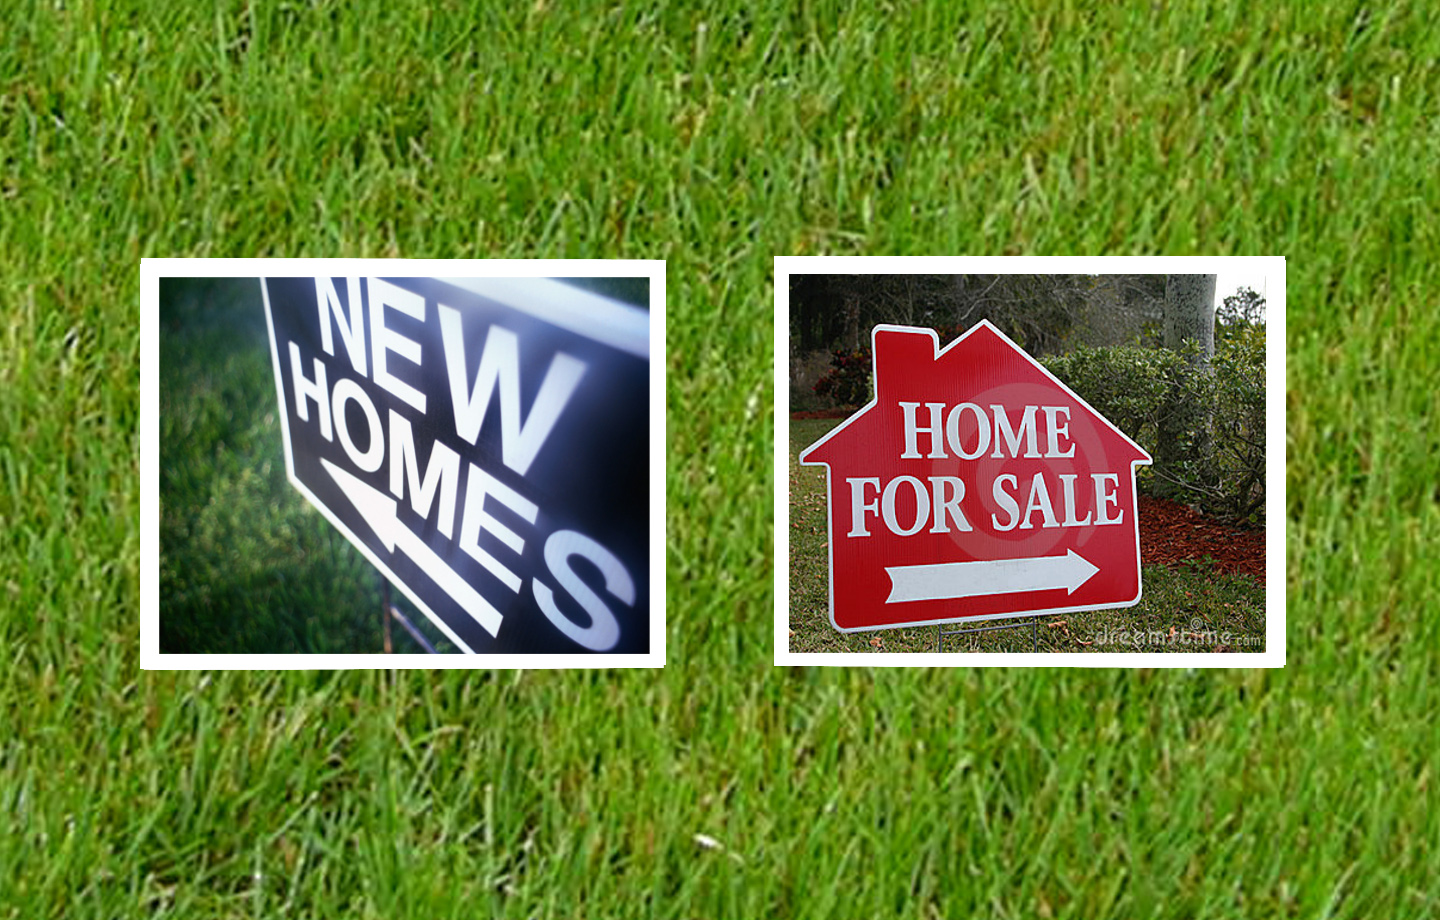 two snapshots over grass that read - NEW HOMES - and - HOME FOR SALE -